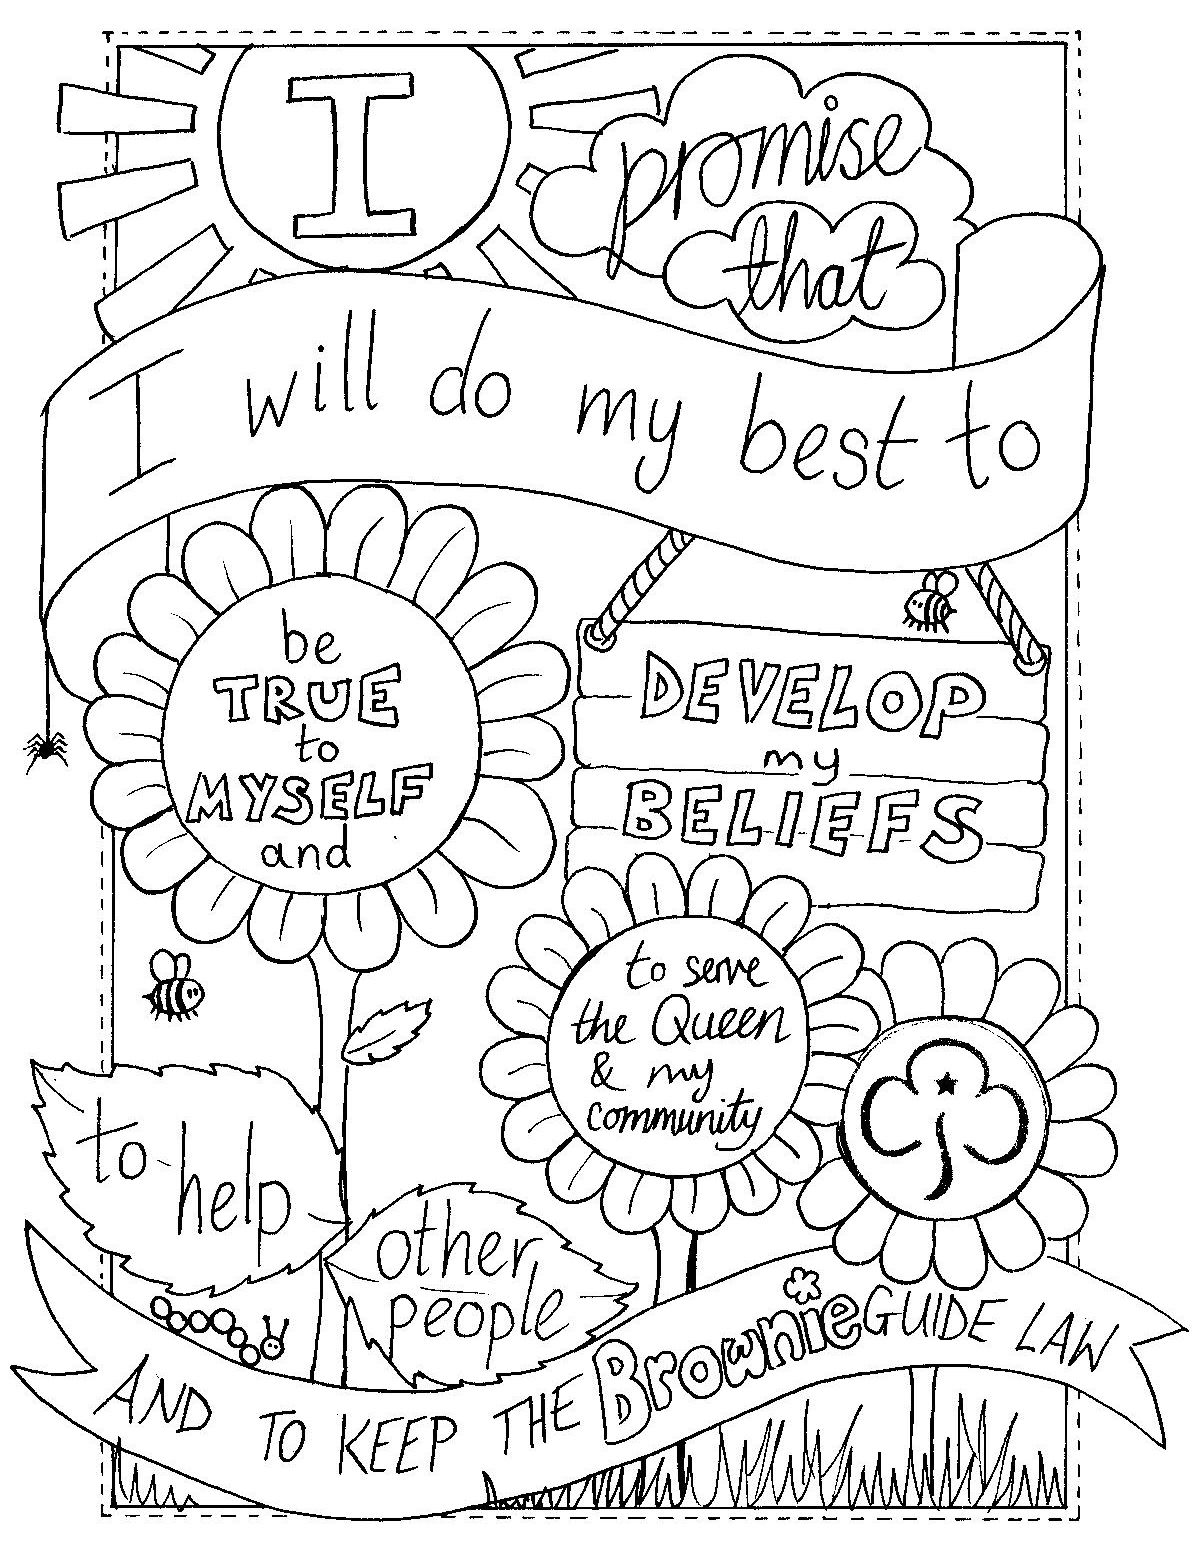 girl scout cookie coloring pages girl scout coloring pages girl scouts brownie girl coloring cookie girl scout pages